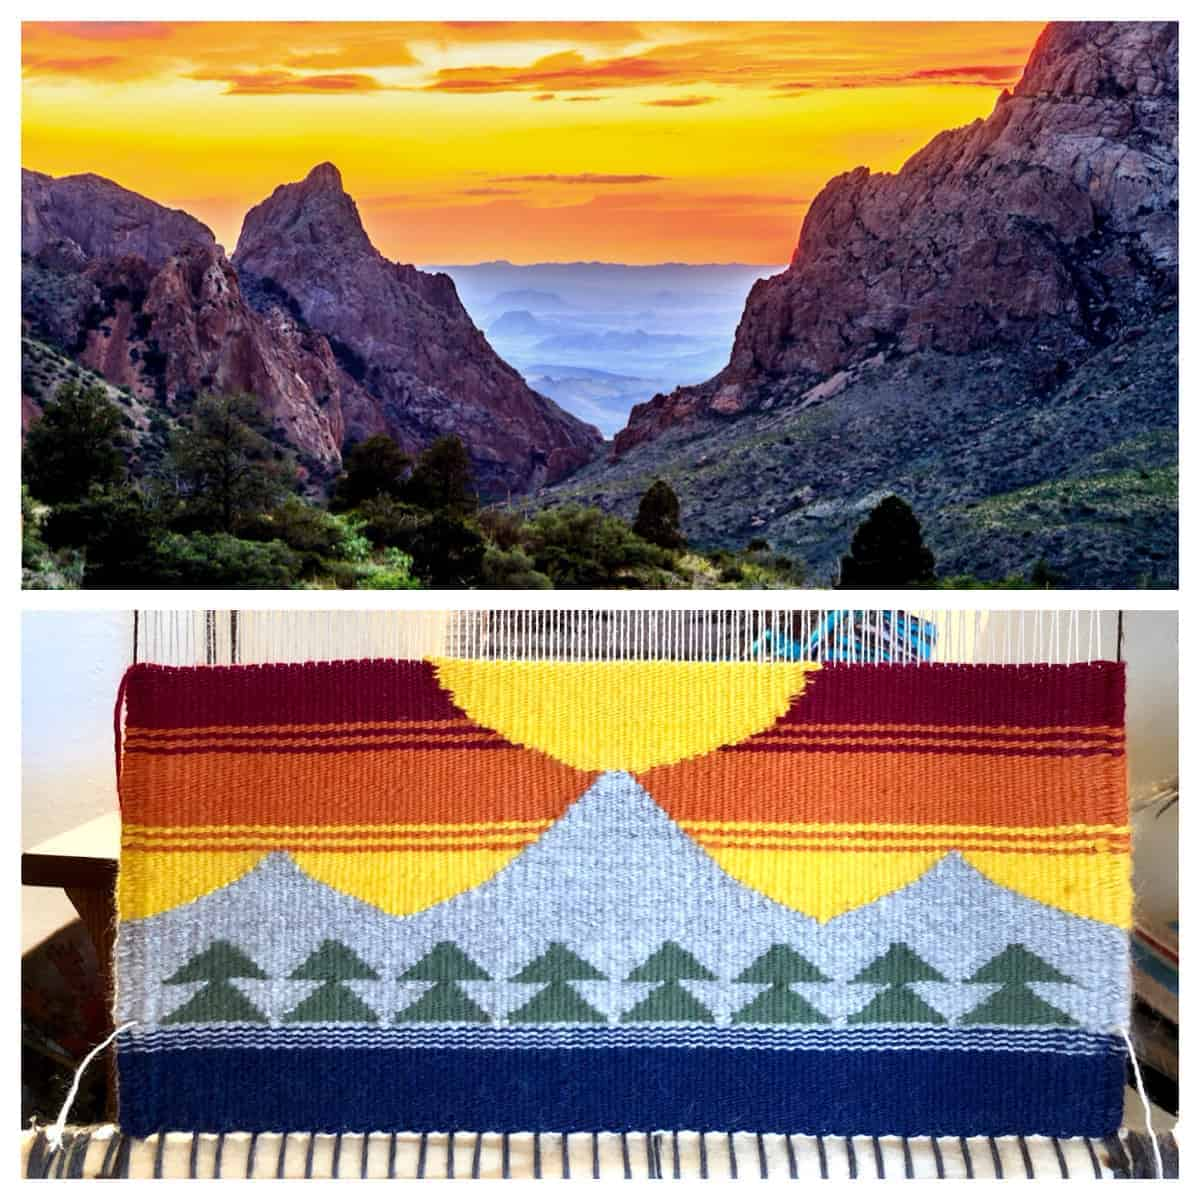 A red and yellow sunset through mountains and a weaving project that echoes the scene.